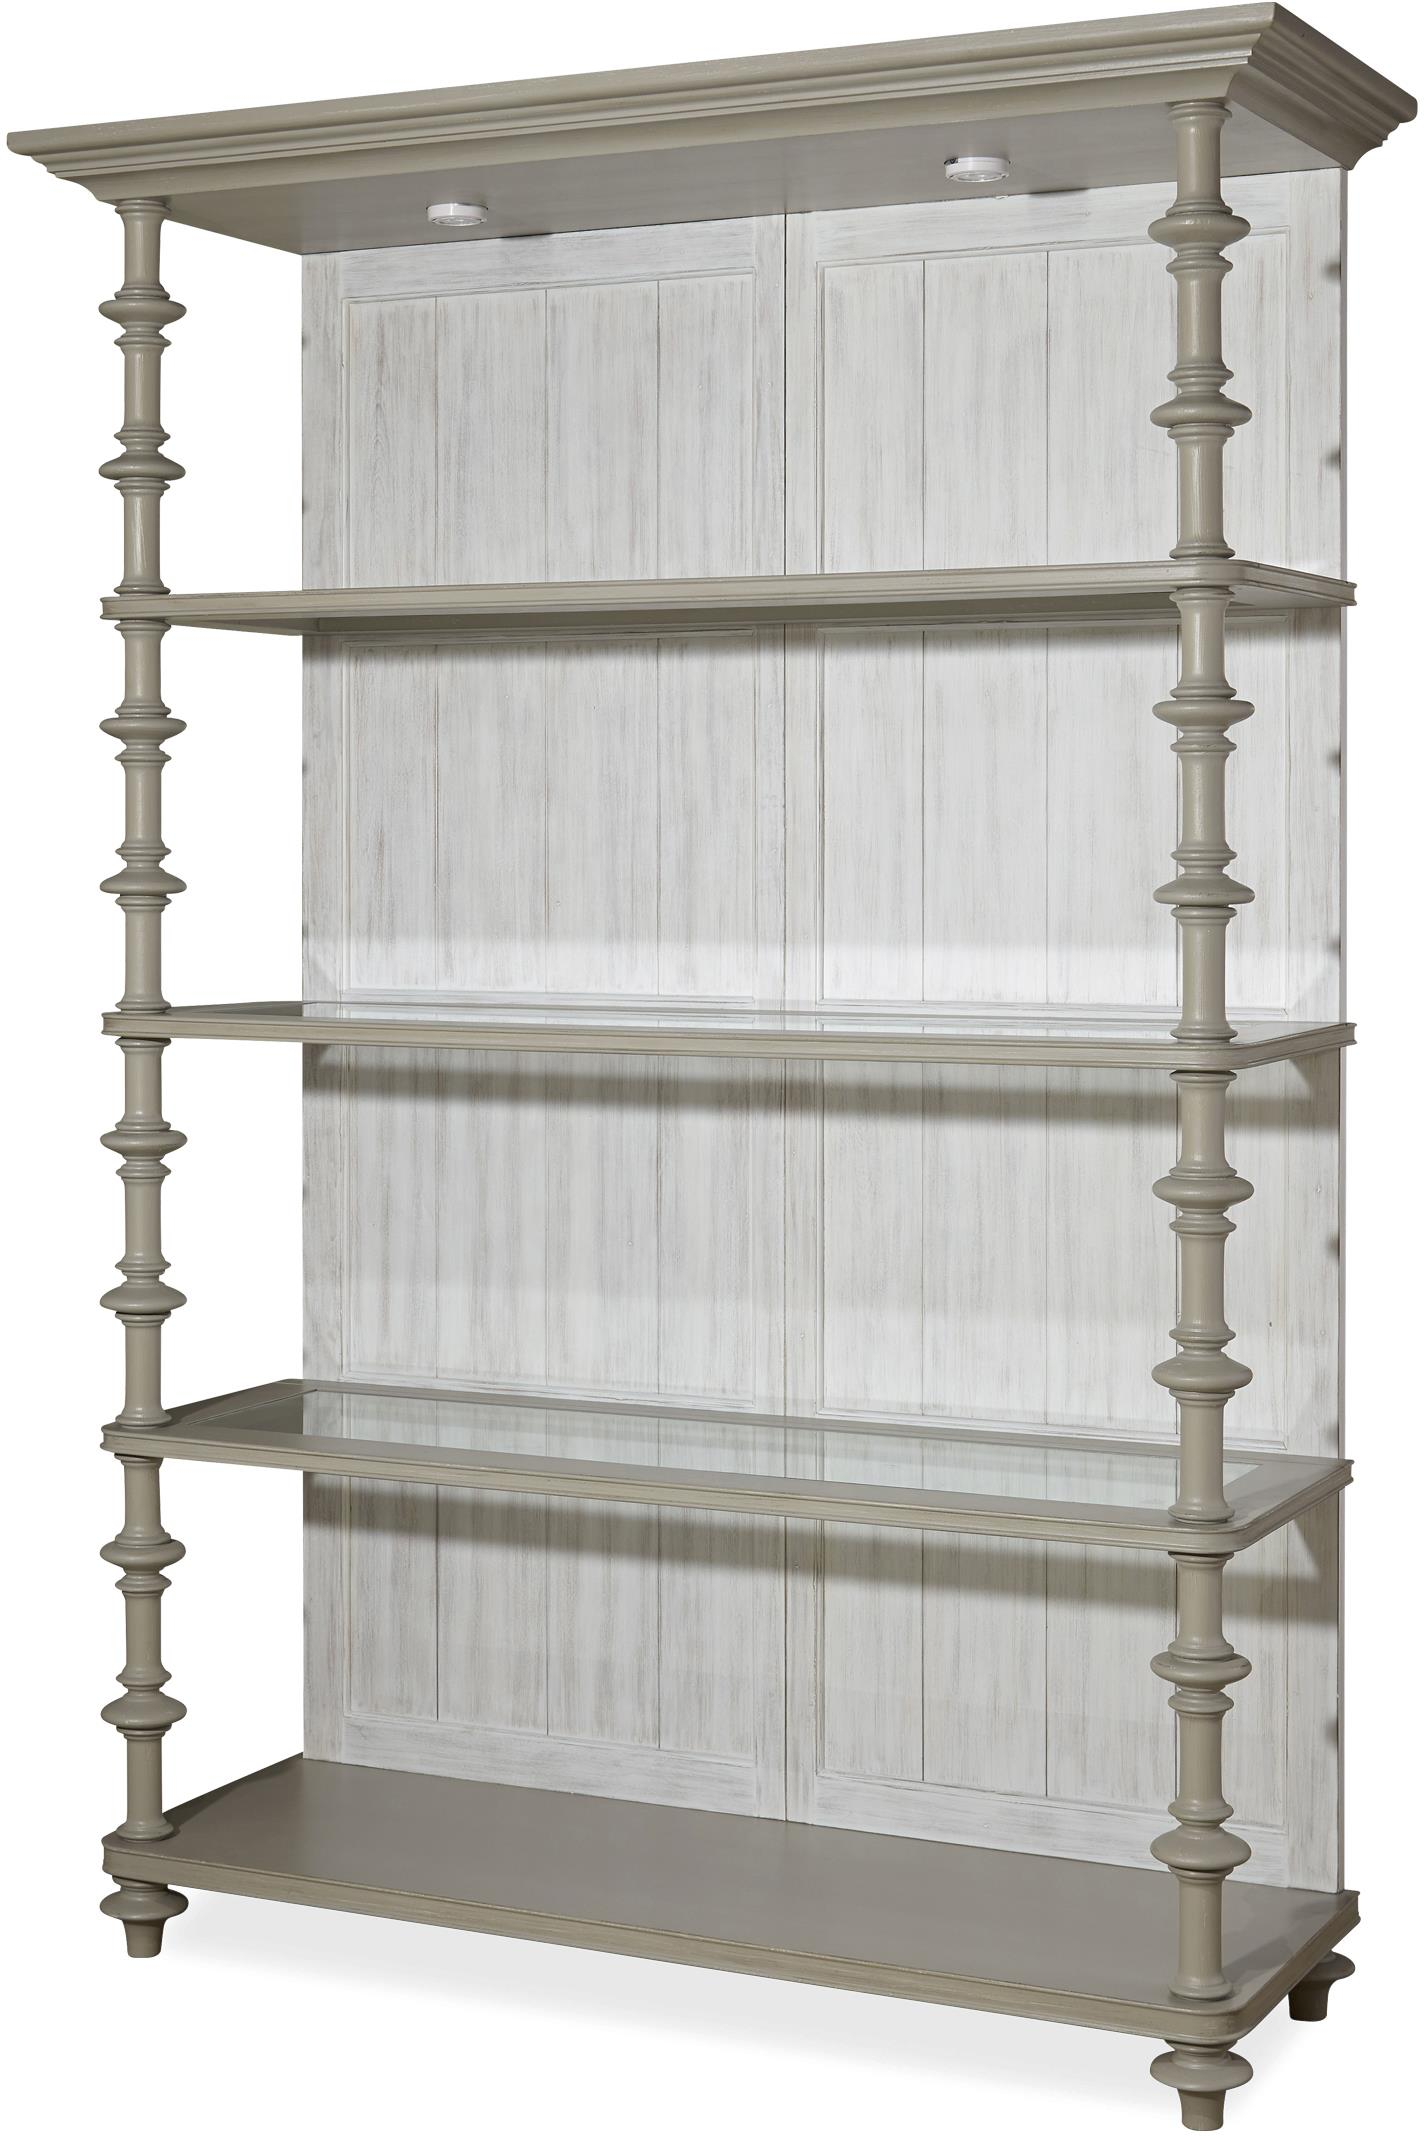 Paula Deen by Universal Dogwood The Debonaire Etagere - Item Number: 599850